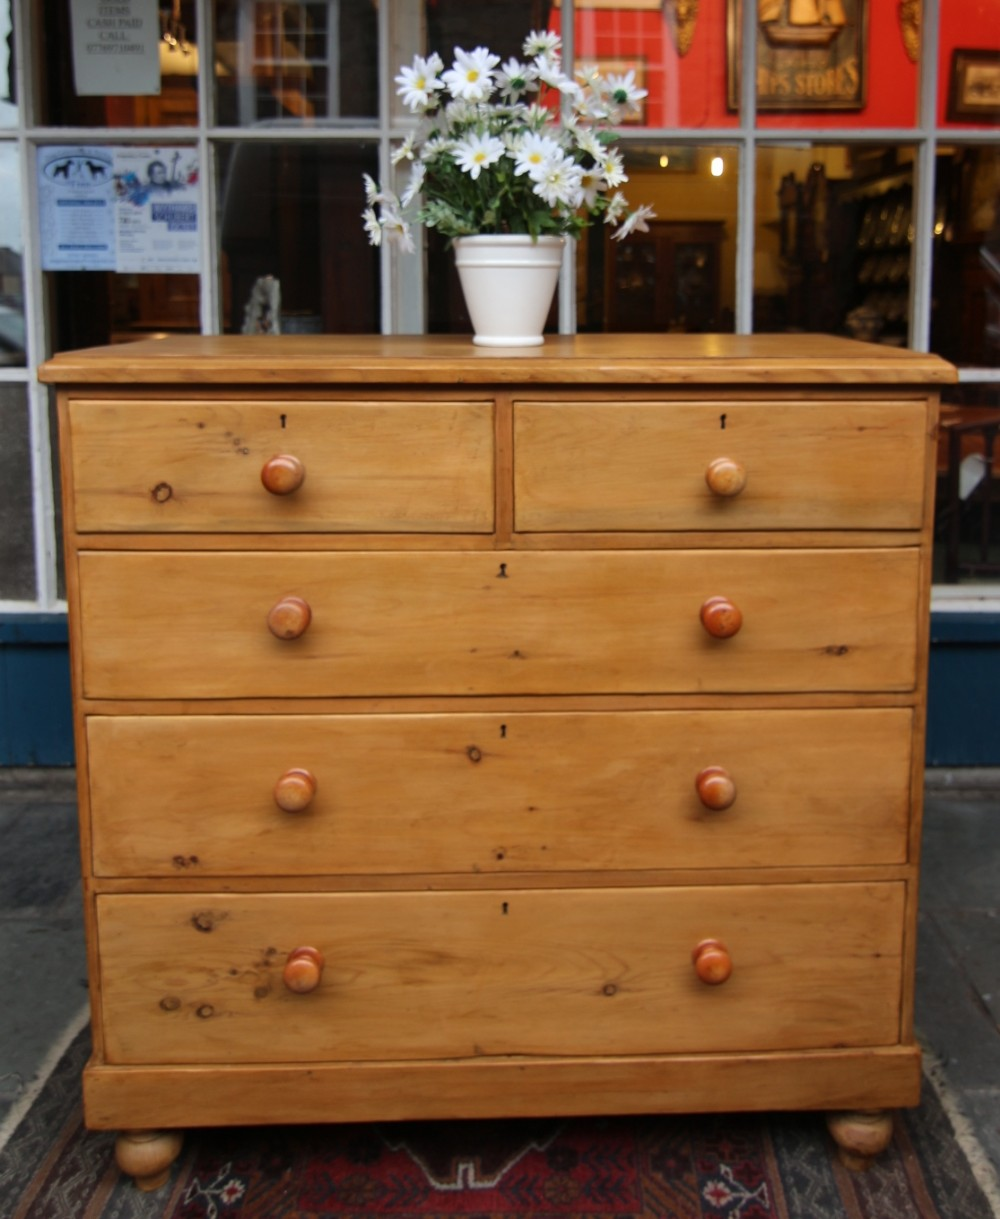 quality 19th century pine 5 drawer chest of drawers